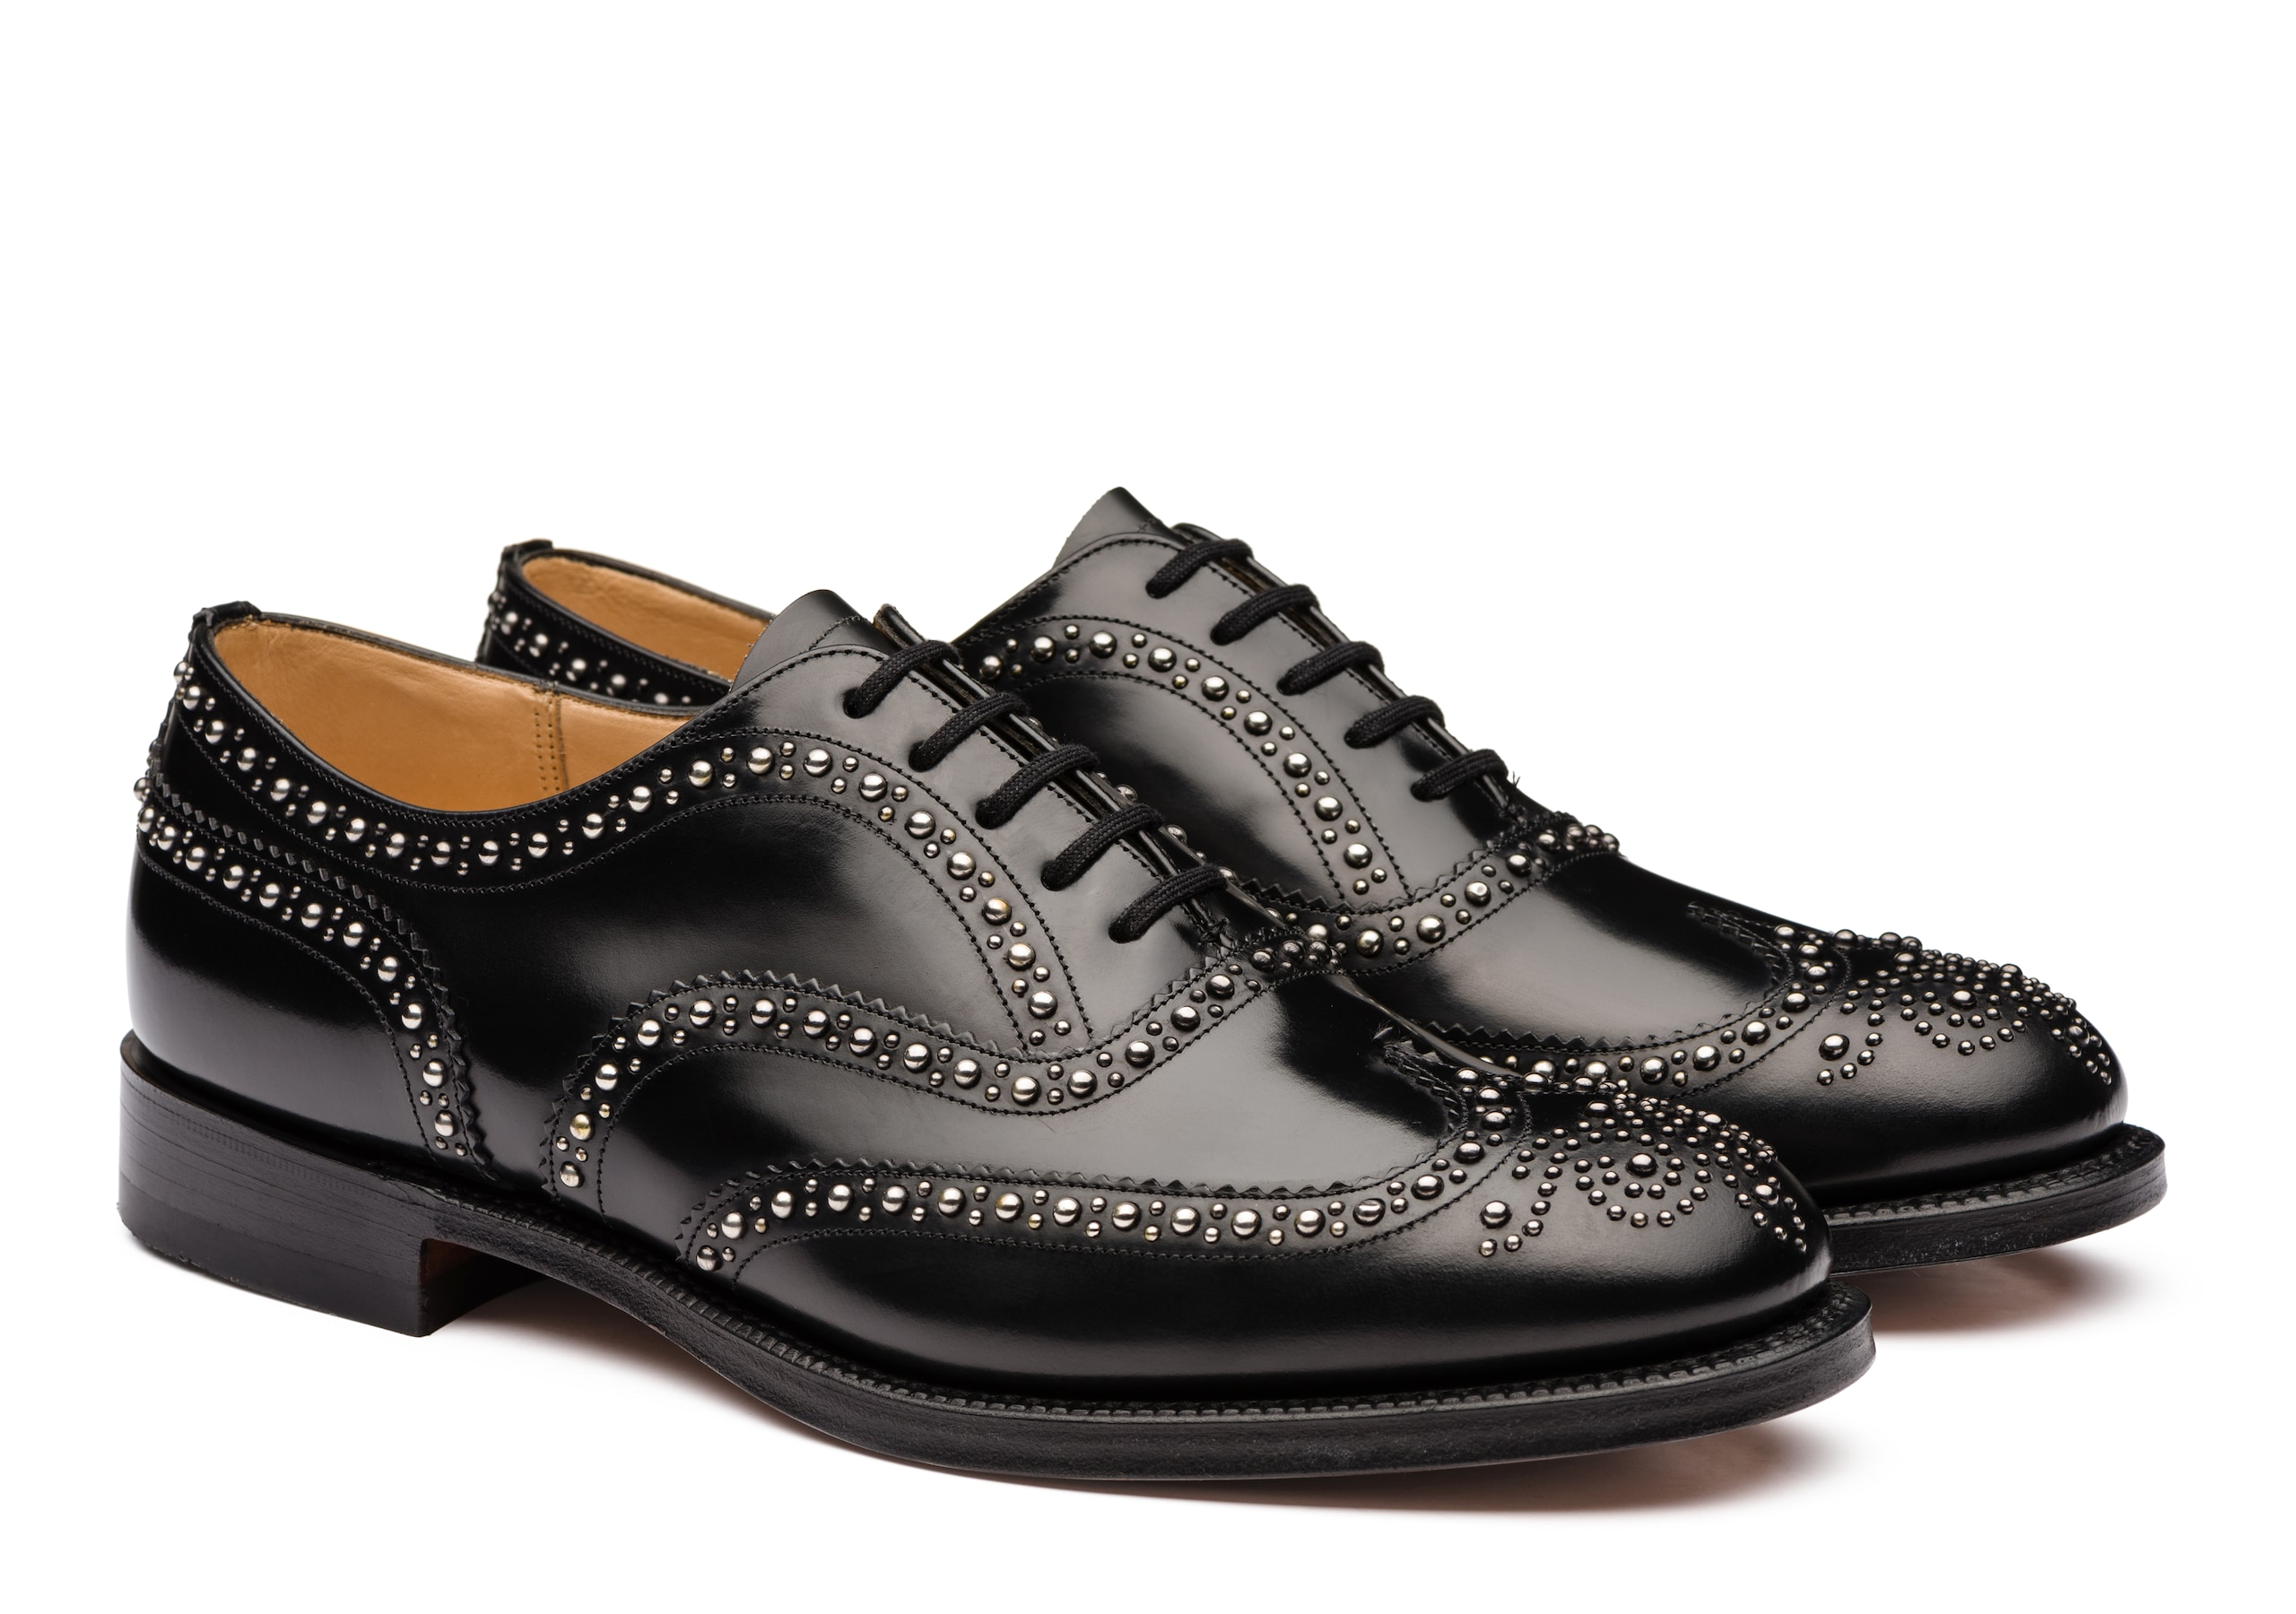 Burwood  2s Church's Polished Binder Oxford Brogue Stud Black